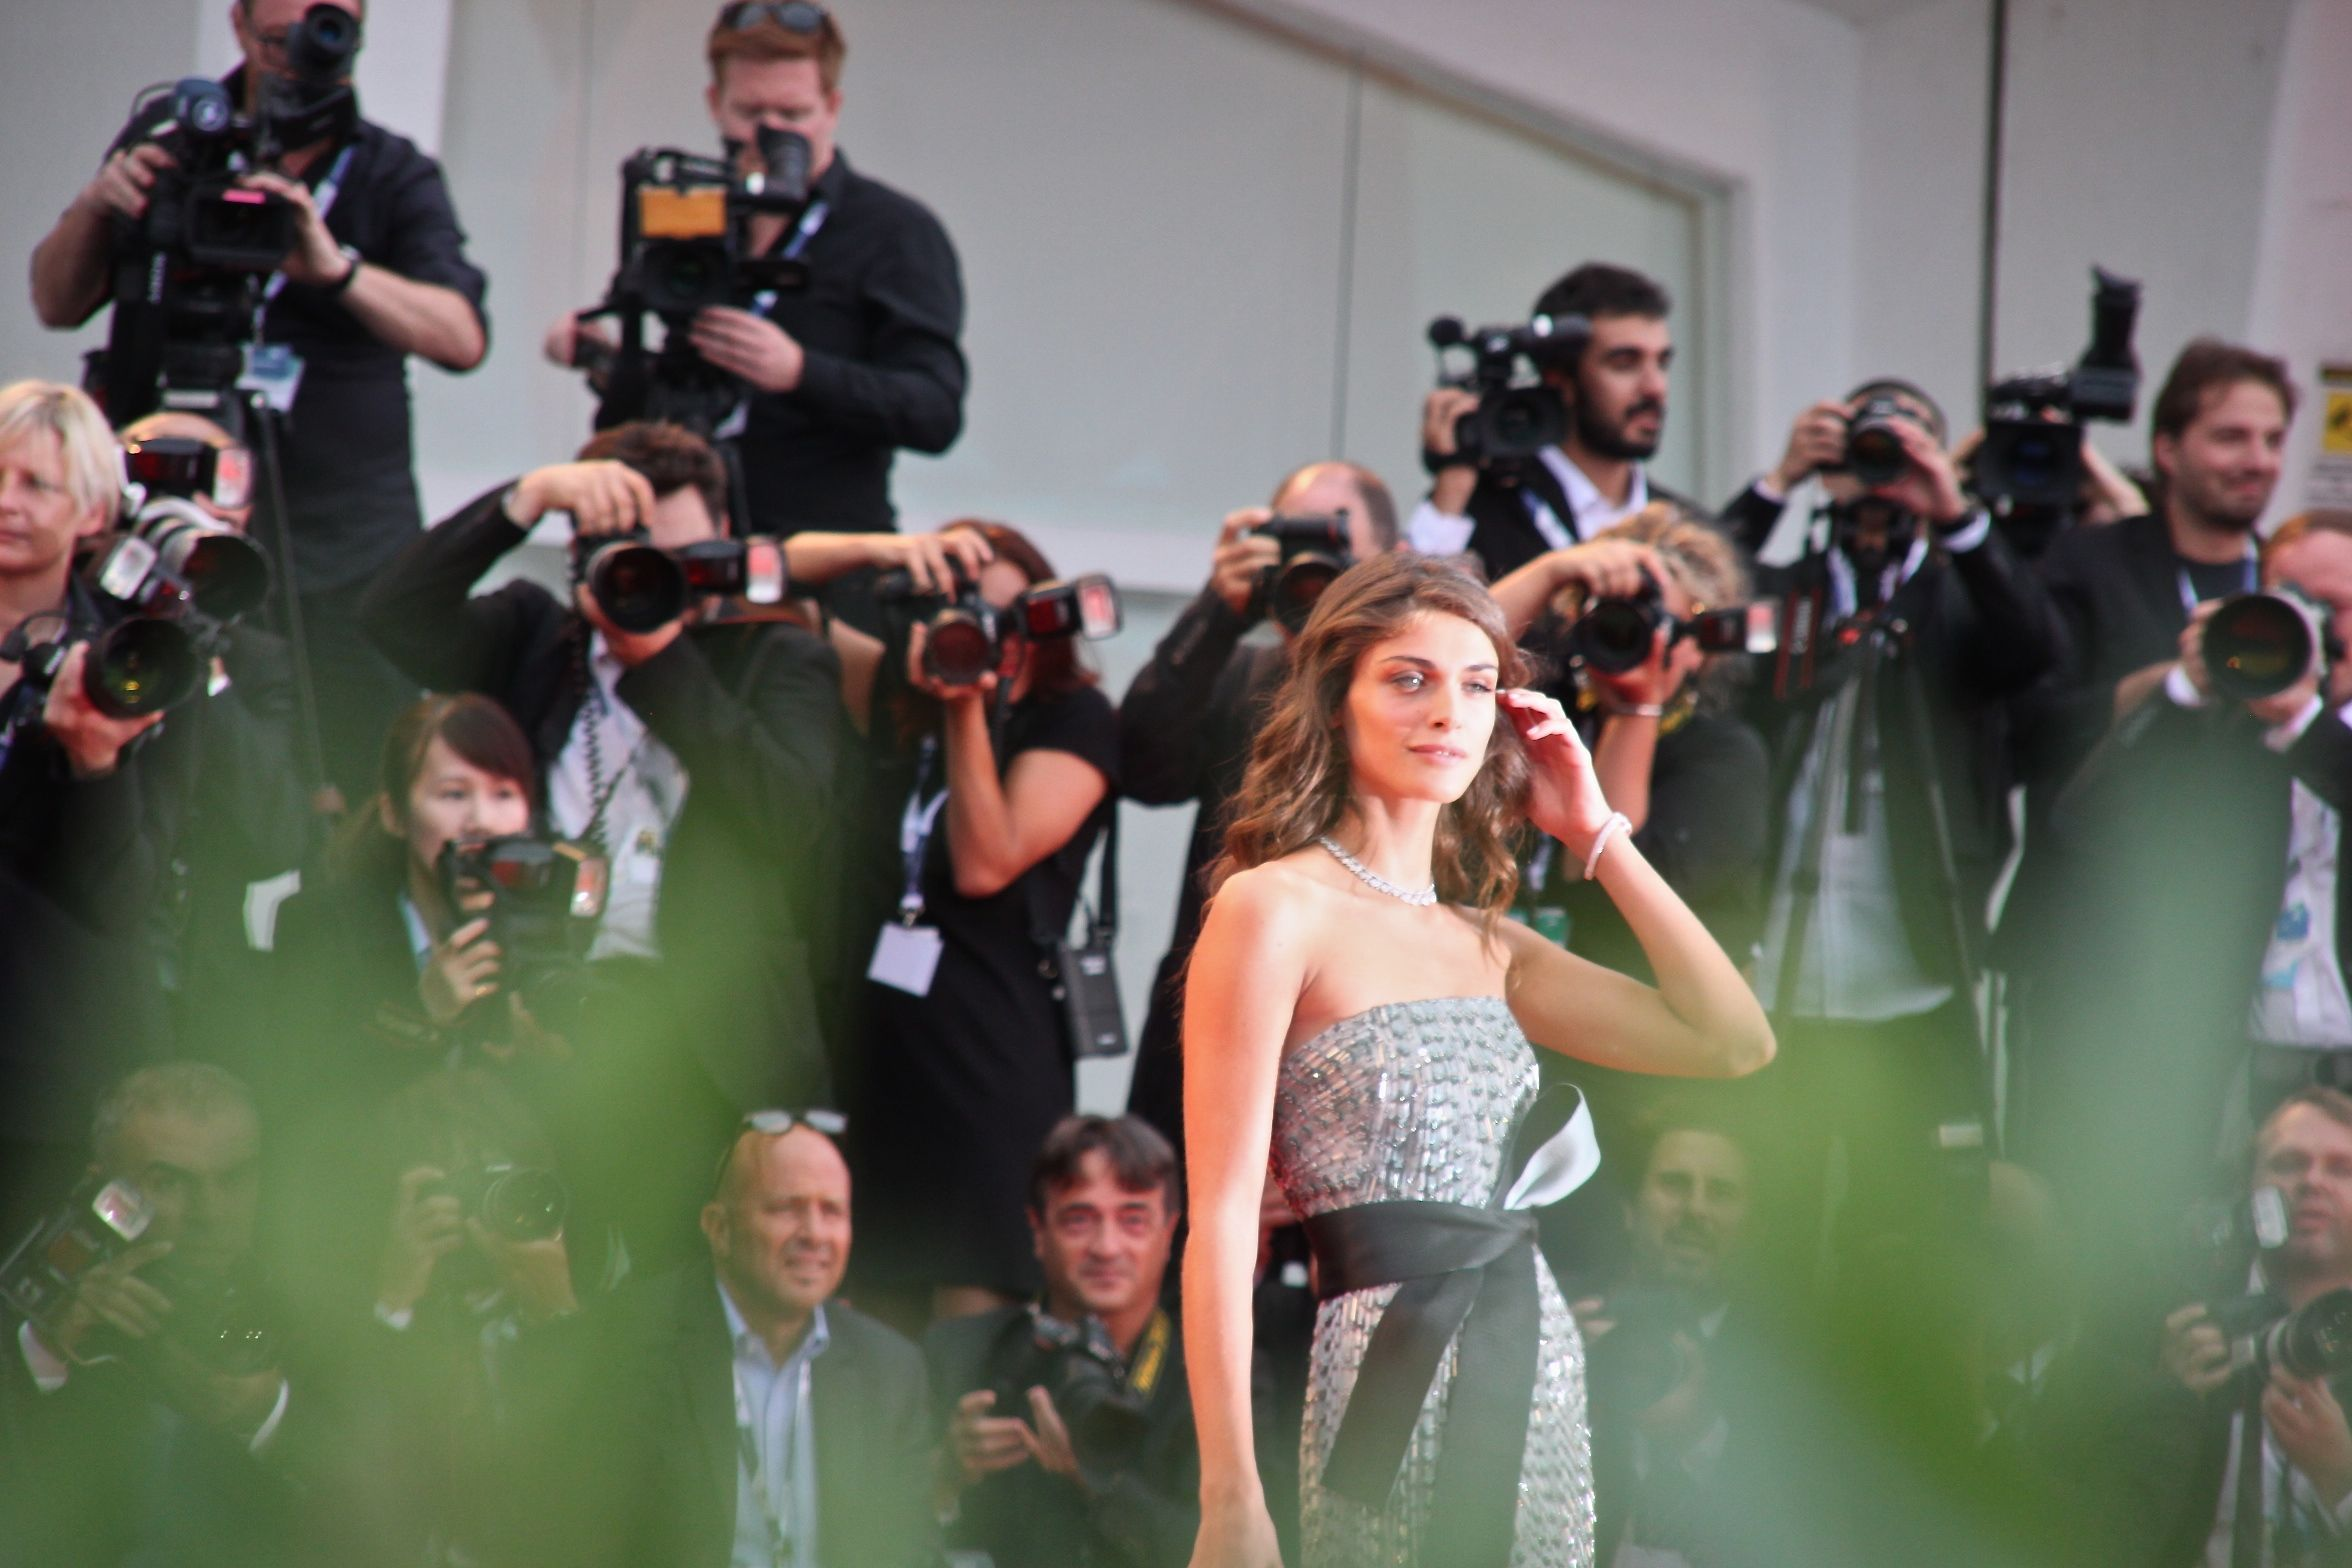 Venice Film Festival's madrina Elisa Sednaoui wows in a full-length silver dress